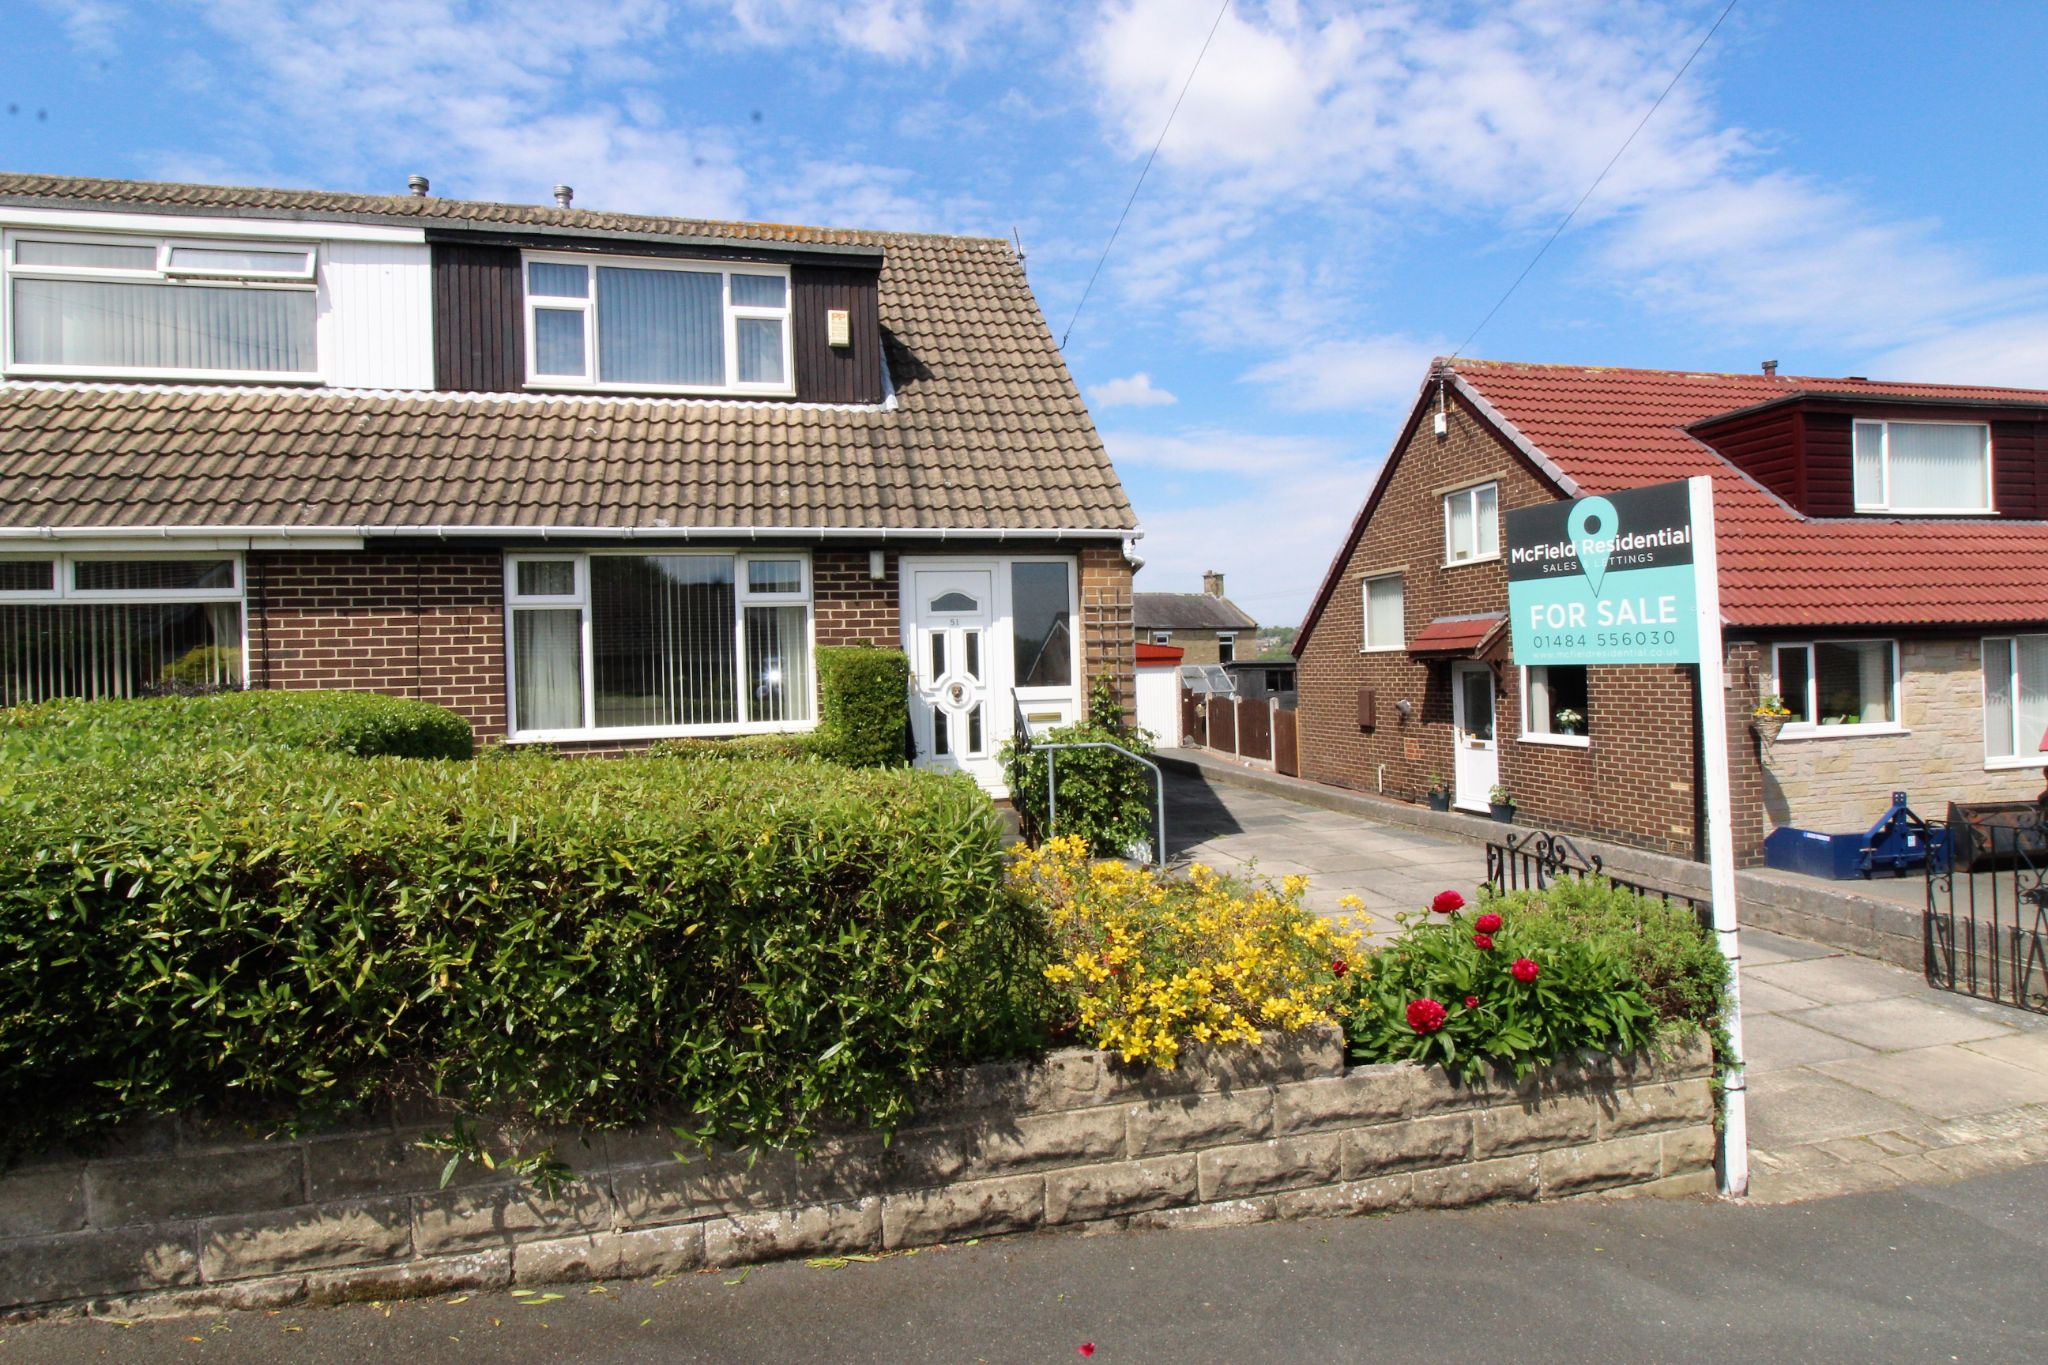 2 bedroom semi-detached bungalow For Sale in Bradford - Front aspect